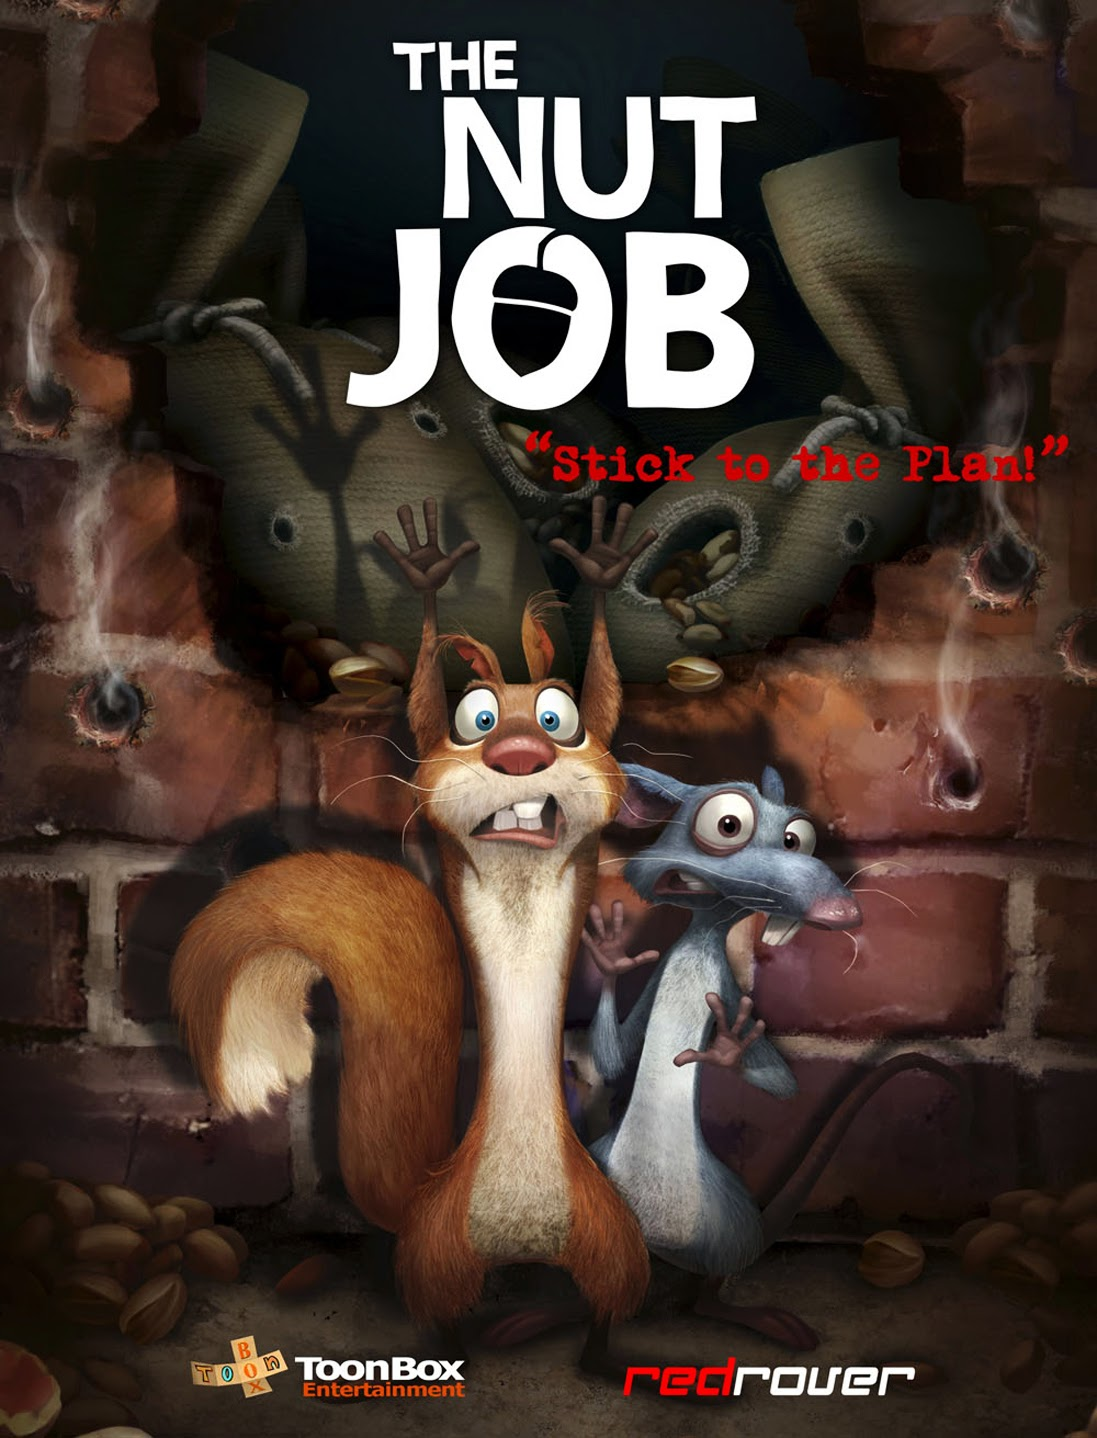 The Nut Job Animation Movie 2014 HD Poster